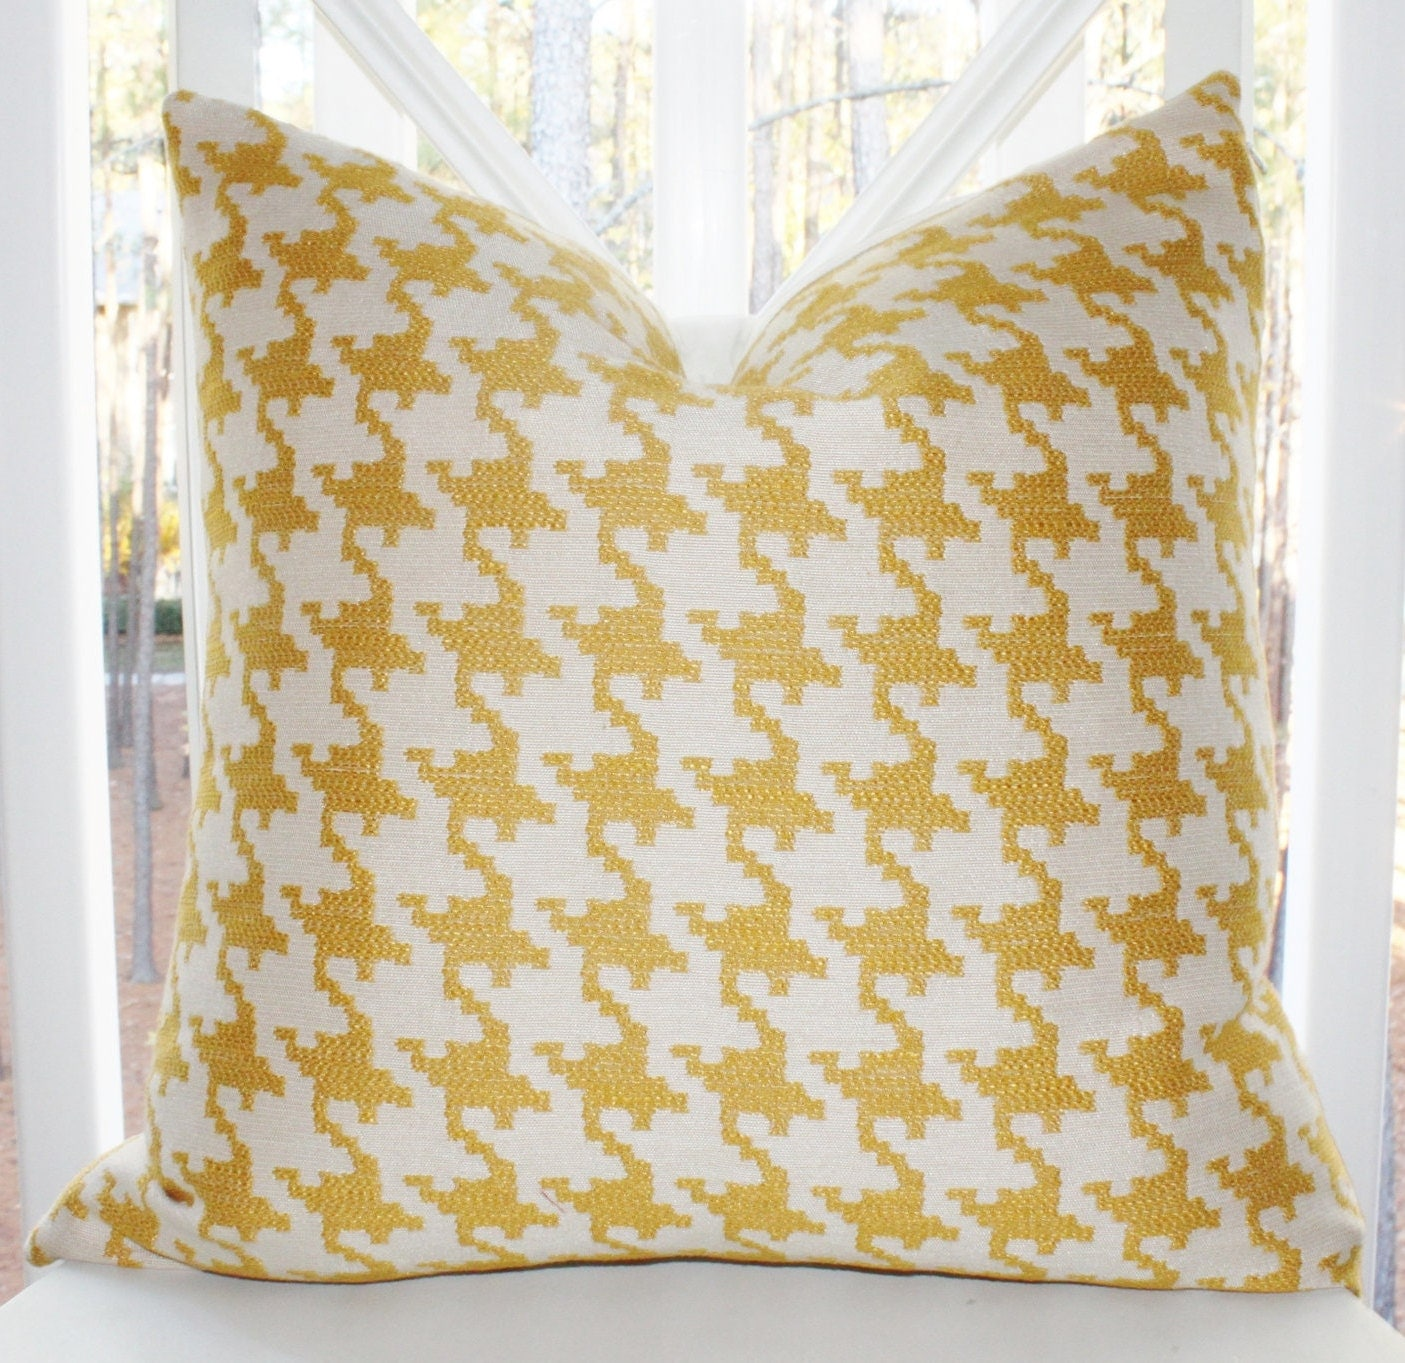 Items similar to Decorative Designer Pillow Cover - 16x16 Yellow Gold Geometric Houndstooth ...